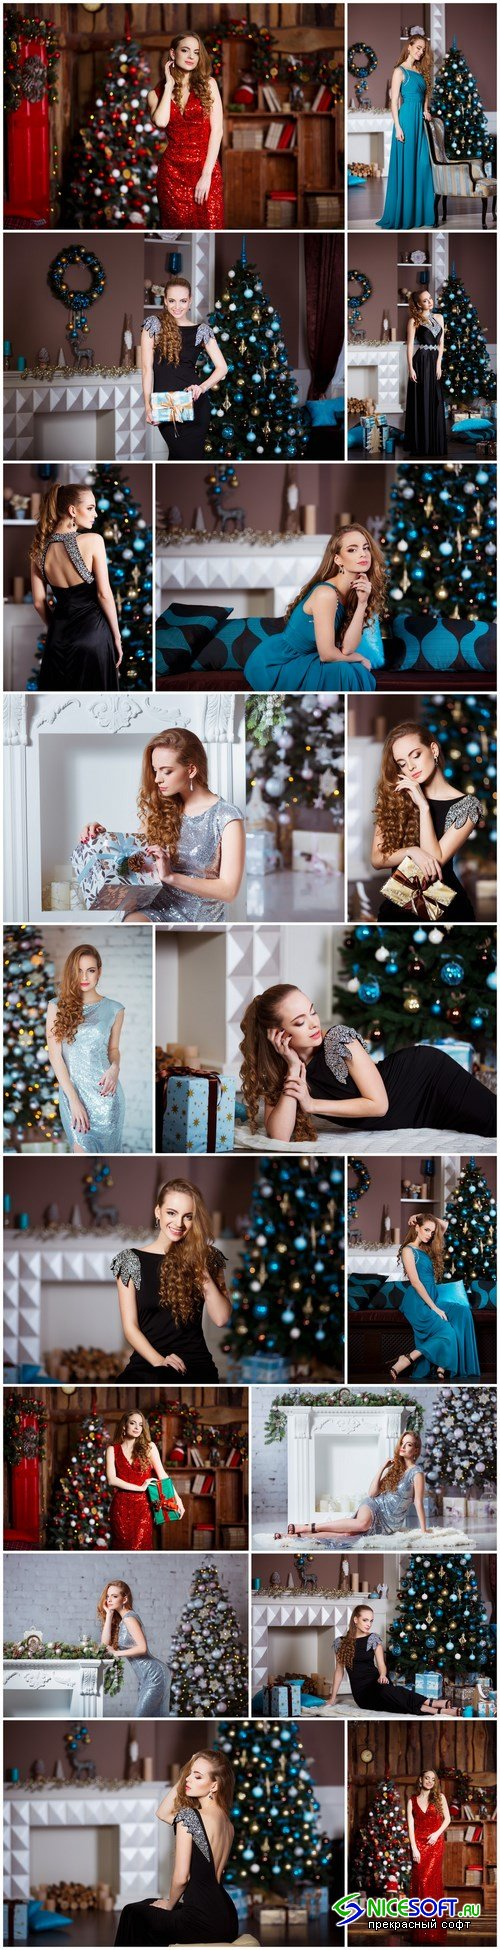 Young woman in elegant dress over christmas interior background - 18xUHQ JPEG